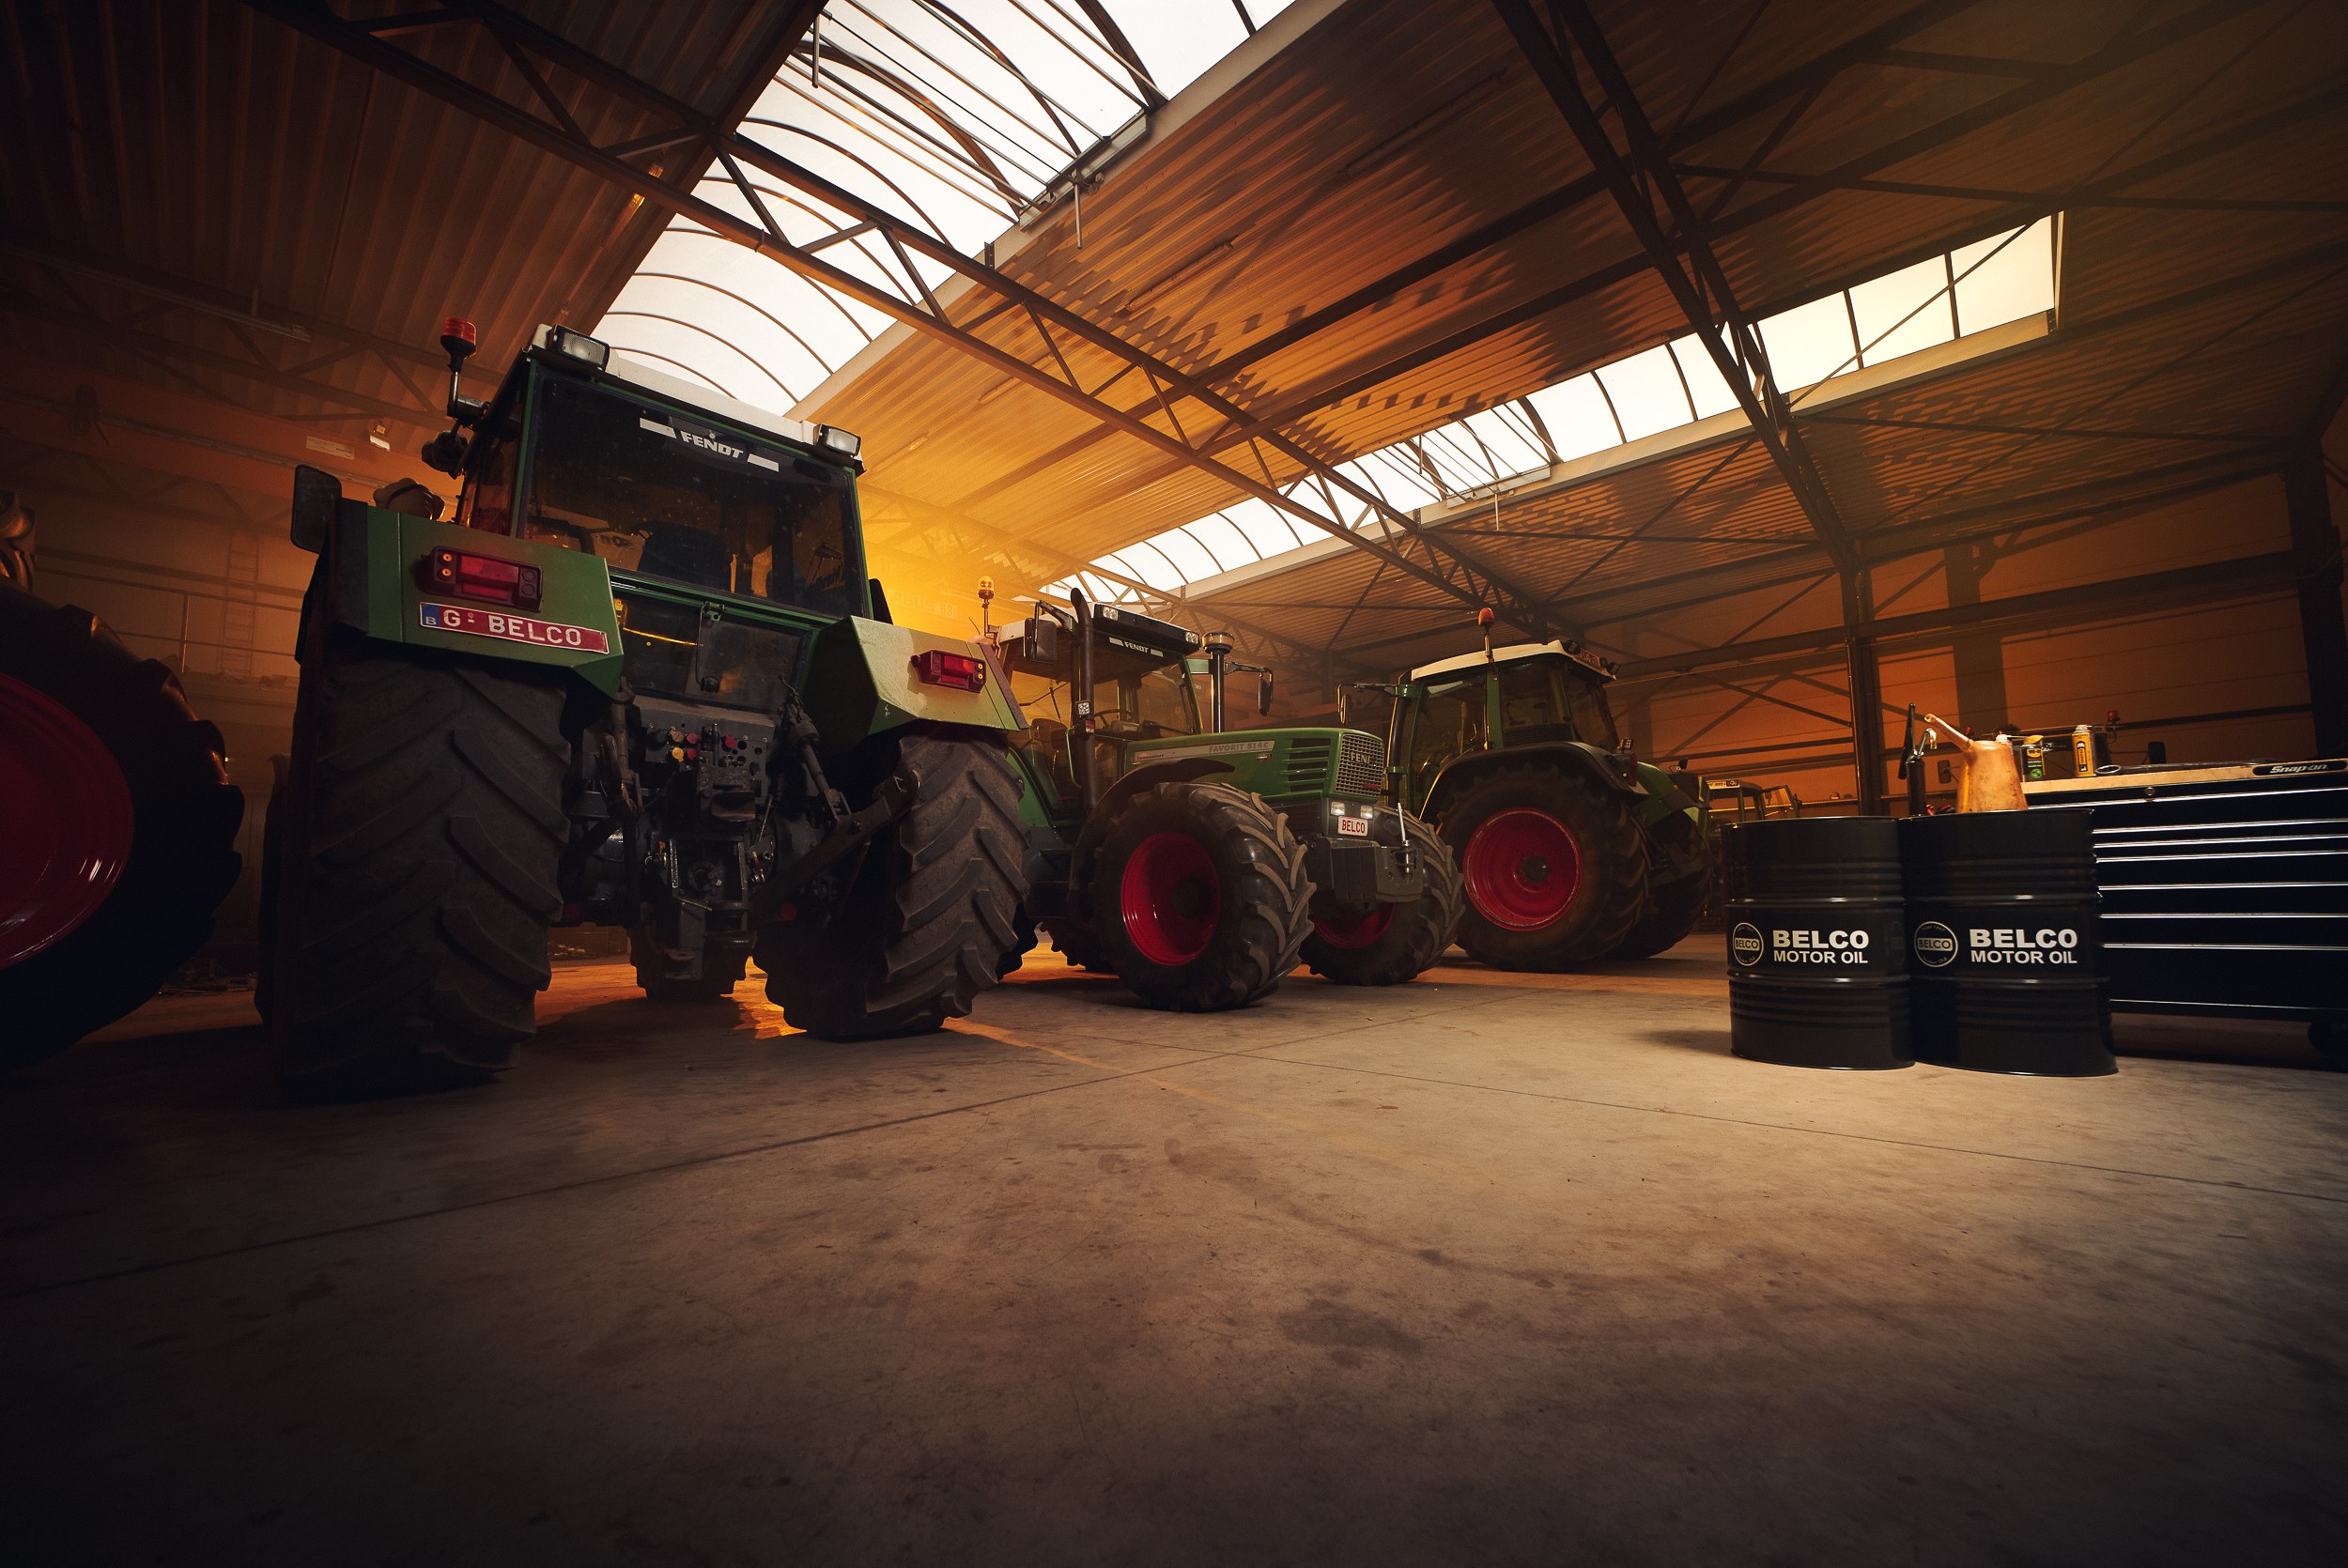 belco agriculture machines oils